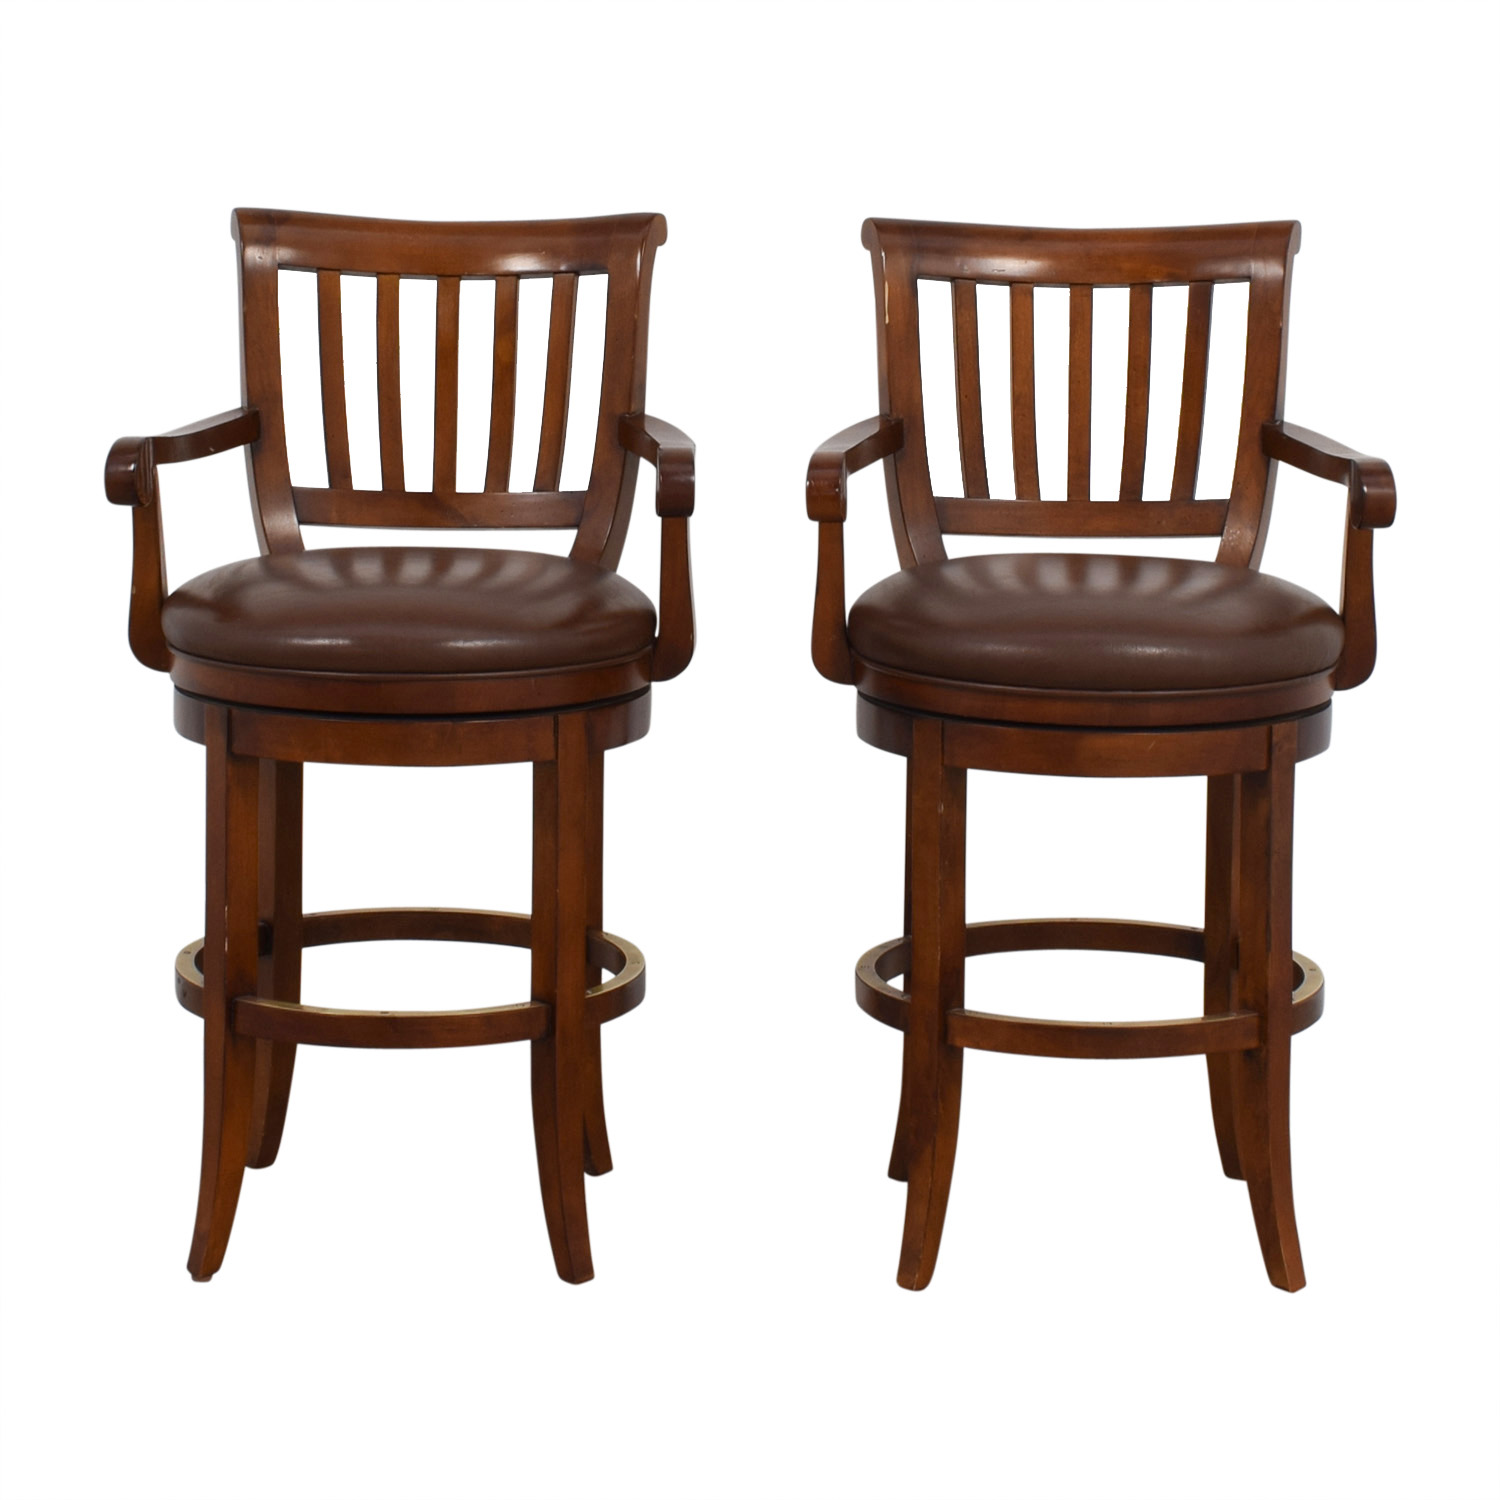 Ethan Allen Ethan Allen Brown Leather Stools coupon